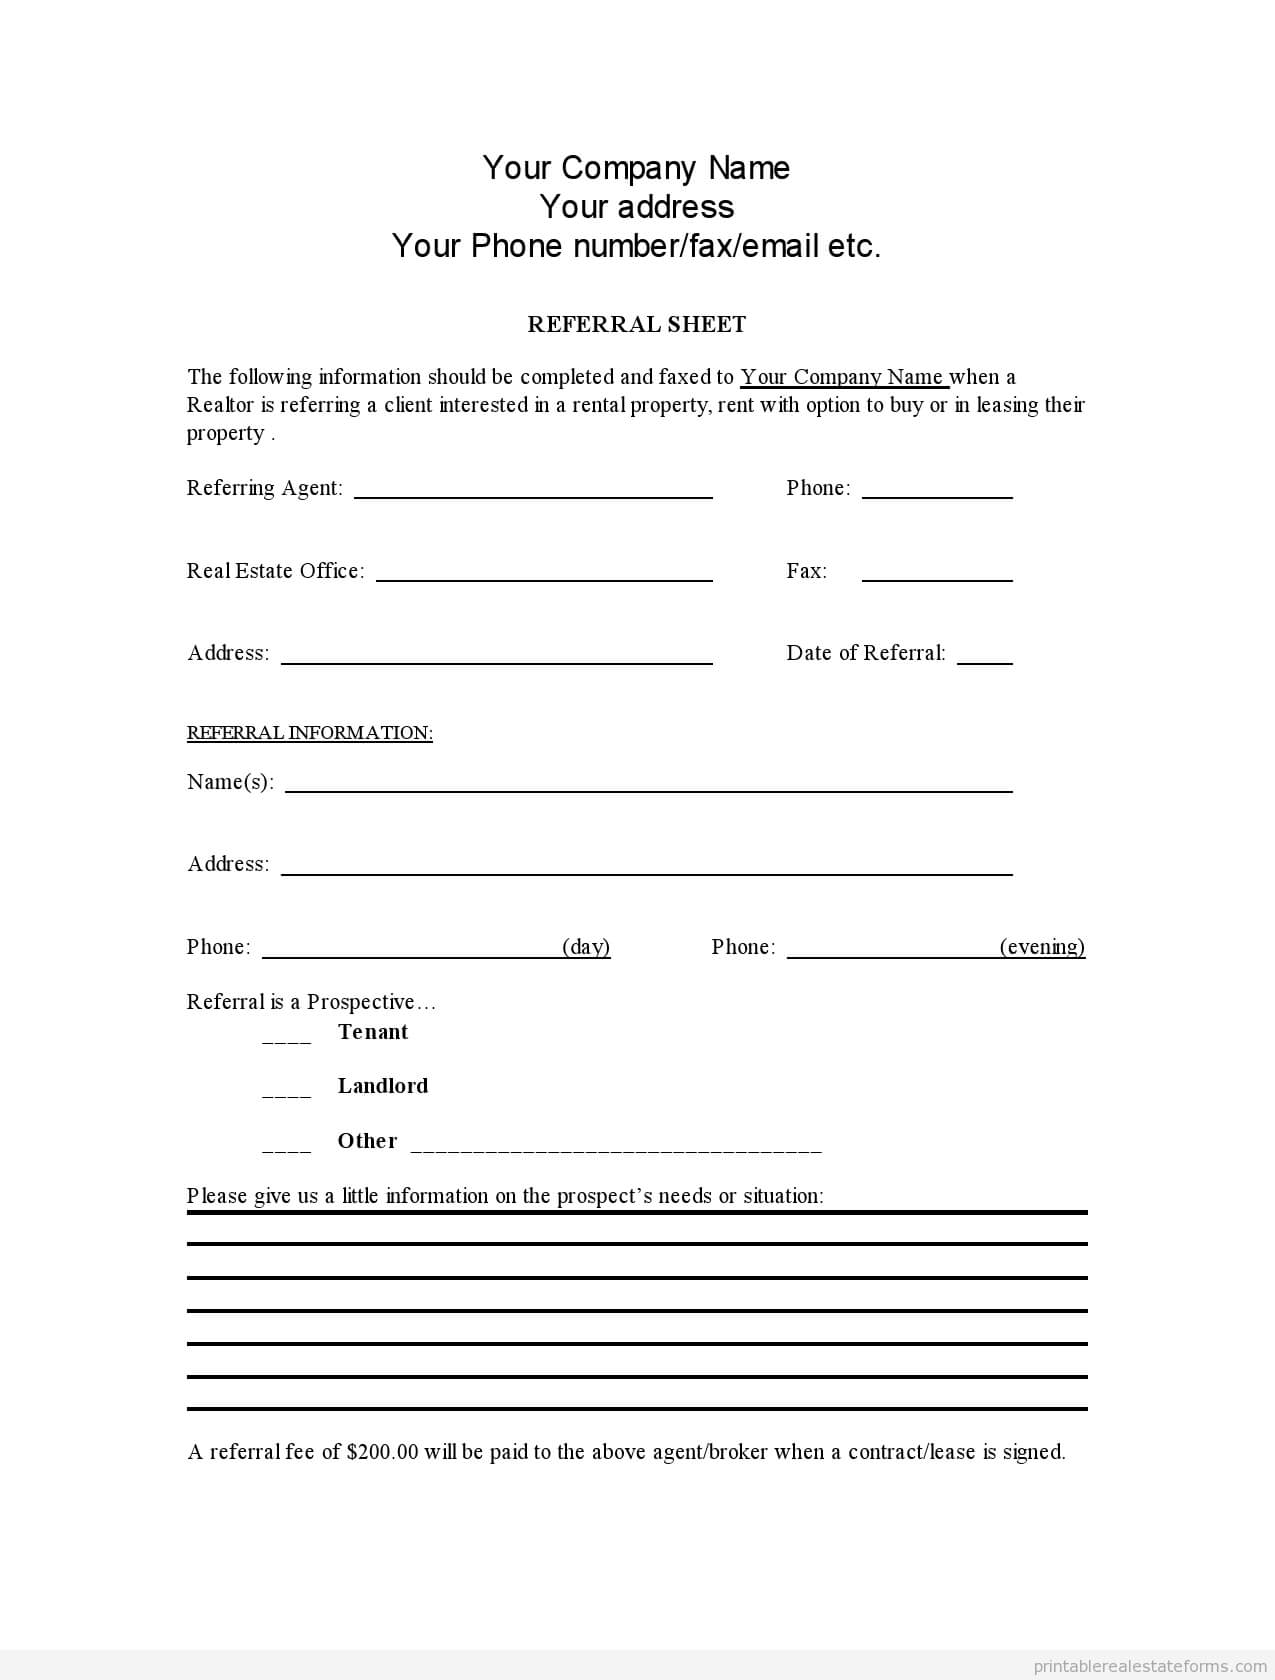 Sample Printable Referral Sheet For Realtors Form | Latest Within Referral Certificate Template